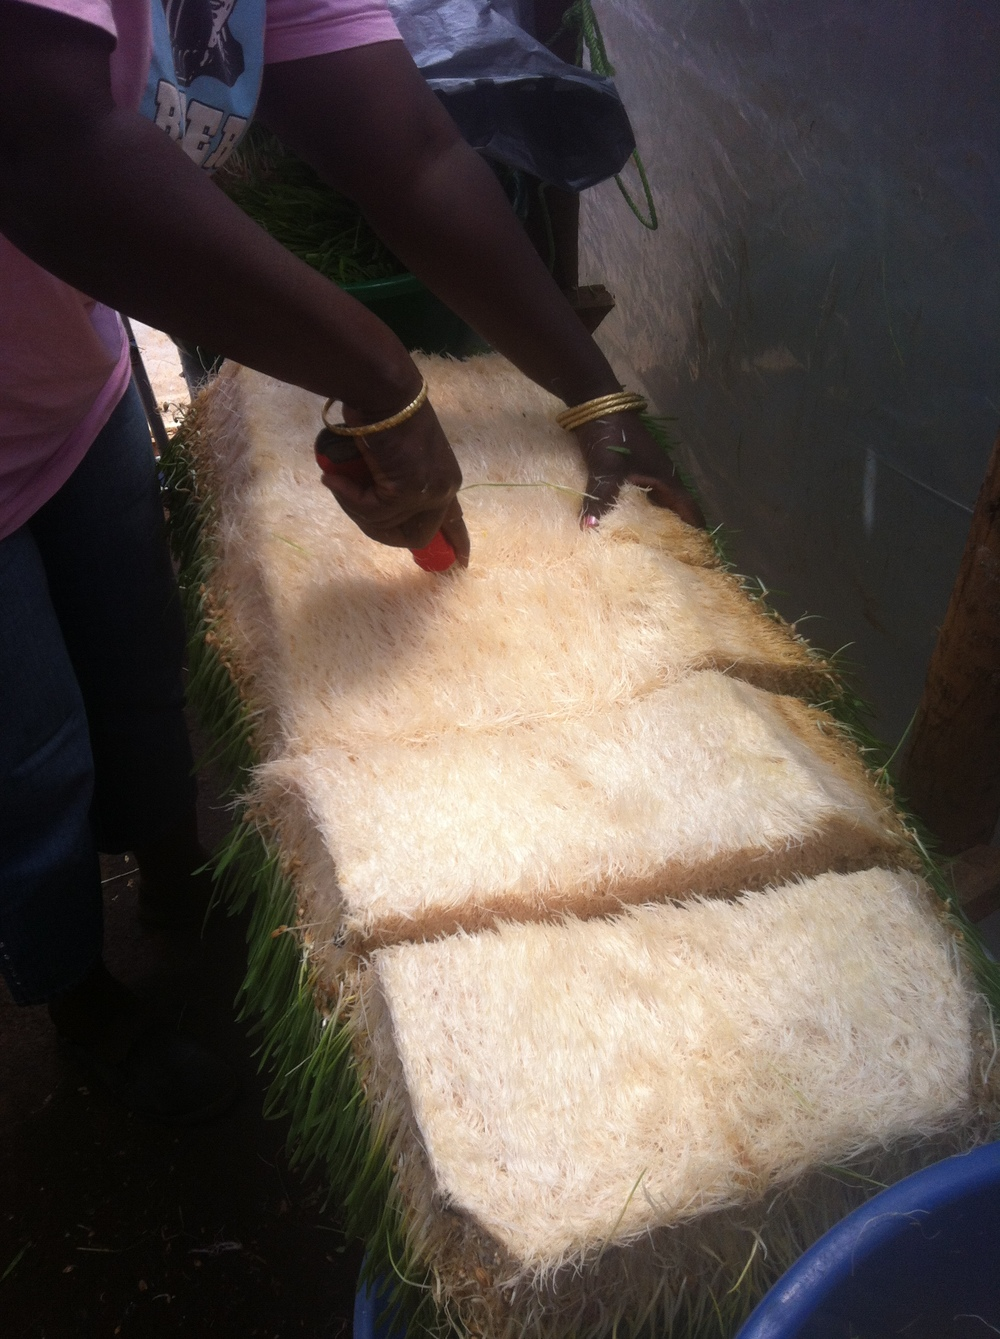 Cutting a fodder mat into small pieces to take as samples to potential customers.